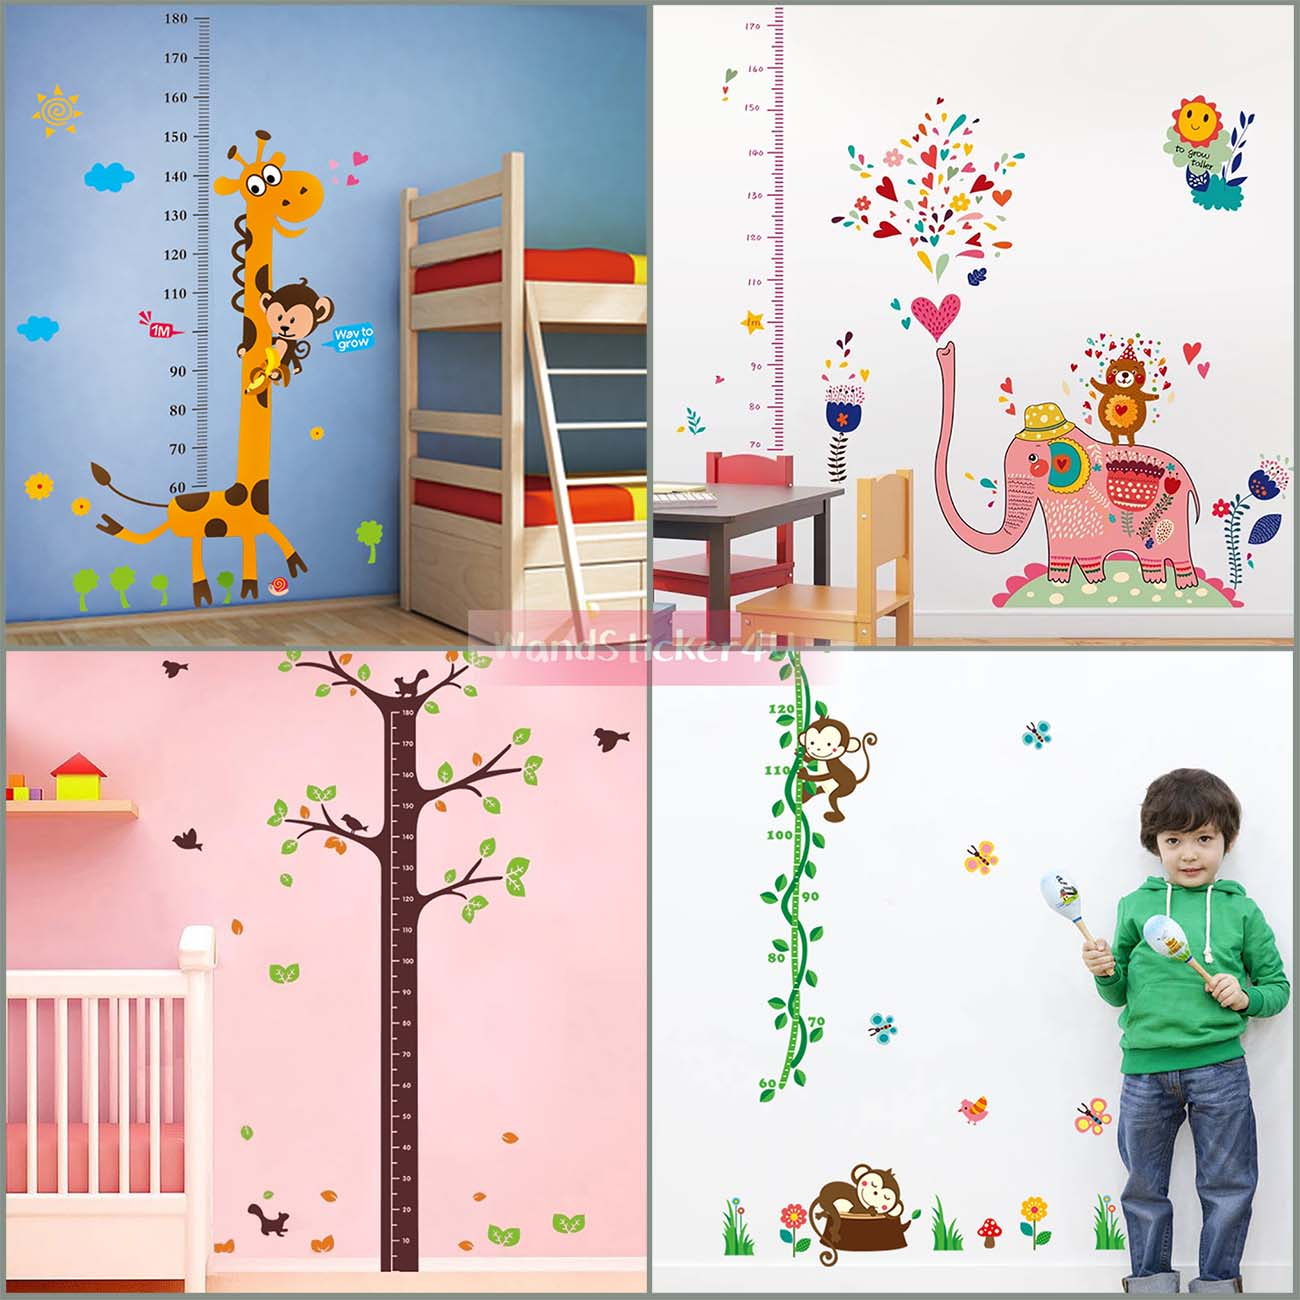 wandtattoo kinderzimmer messlatte wald tiere zoo dschungel wandsticker kinder ebay. Black Bedroom Furniture Sets. Home Design Ideas